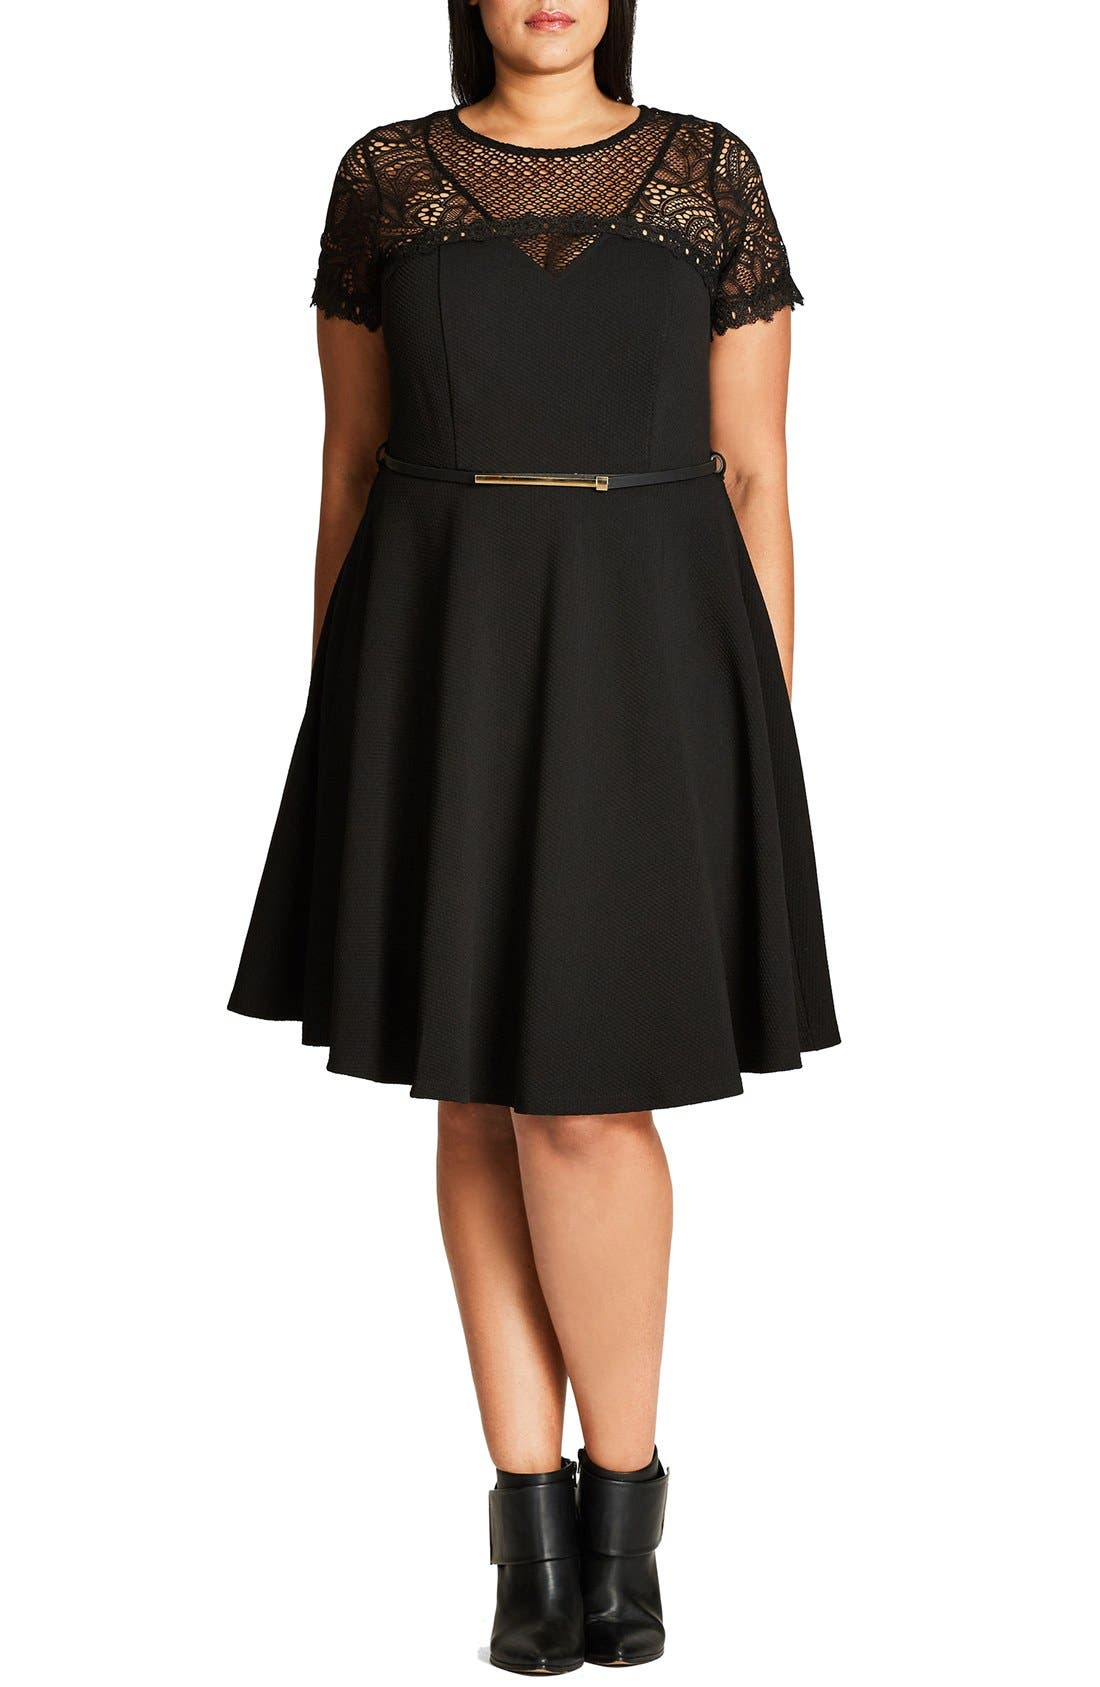 CITY CHIC Lace Fever Dress